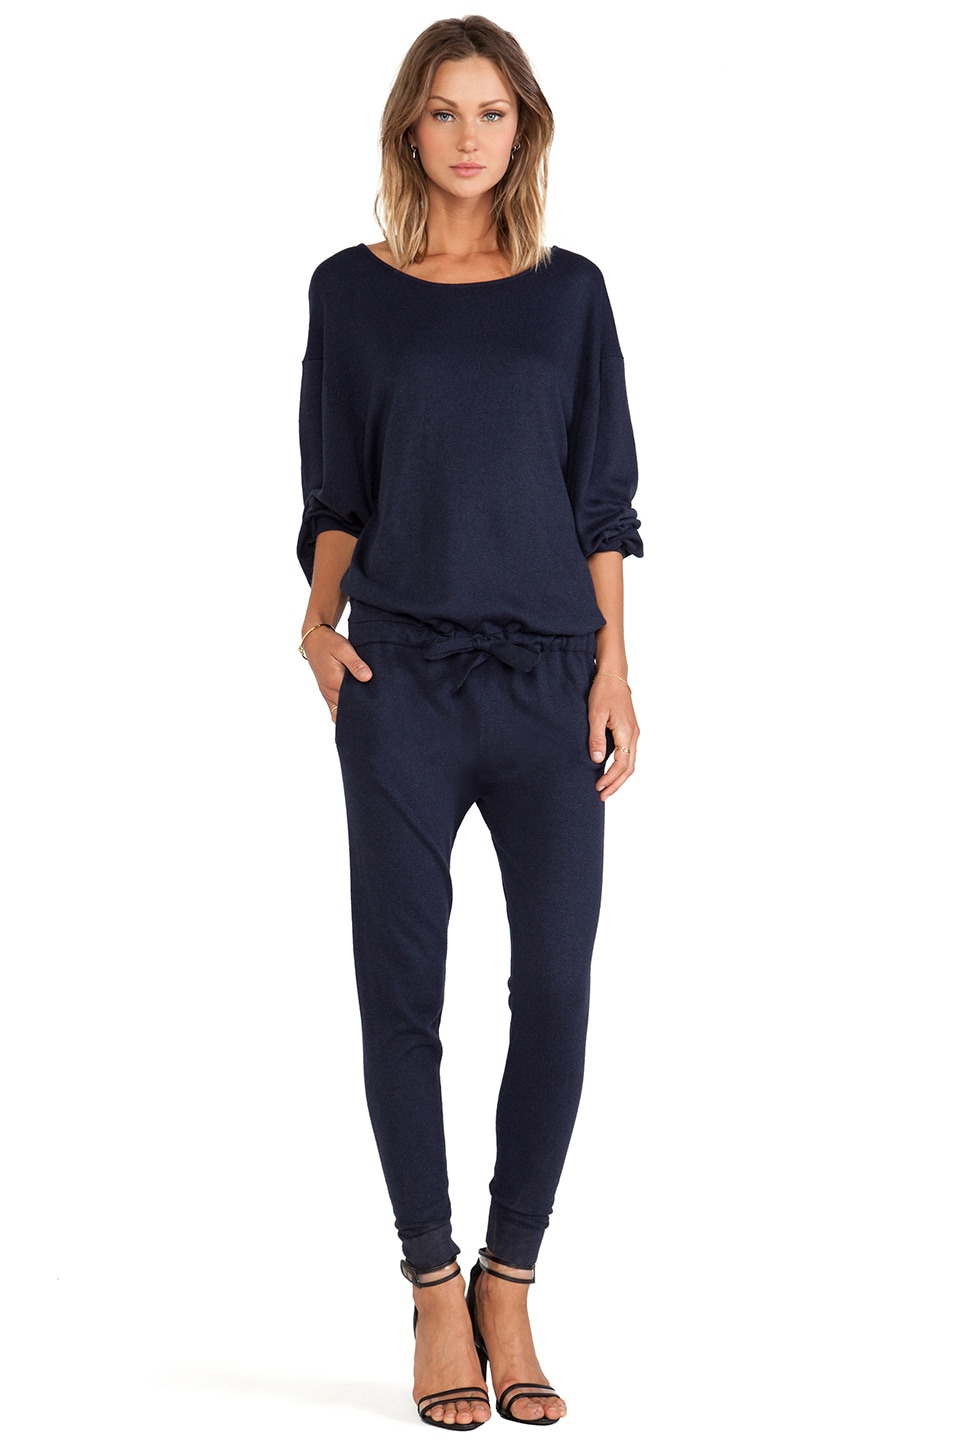 ASILIO One Is Enough Onesie in Navy